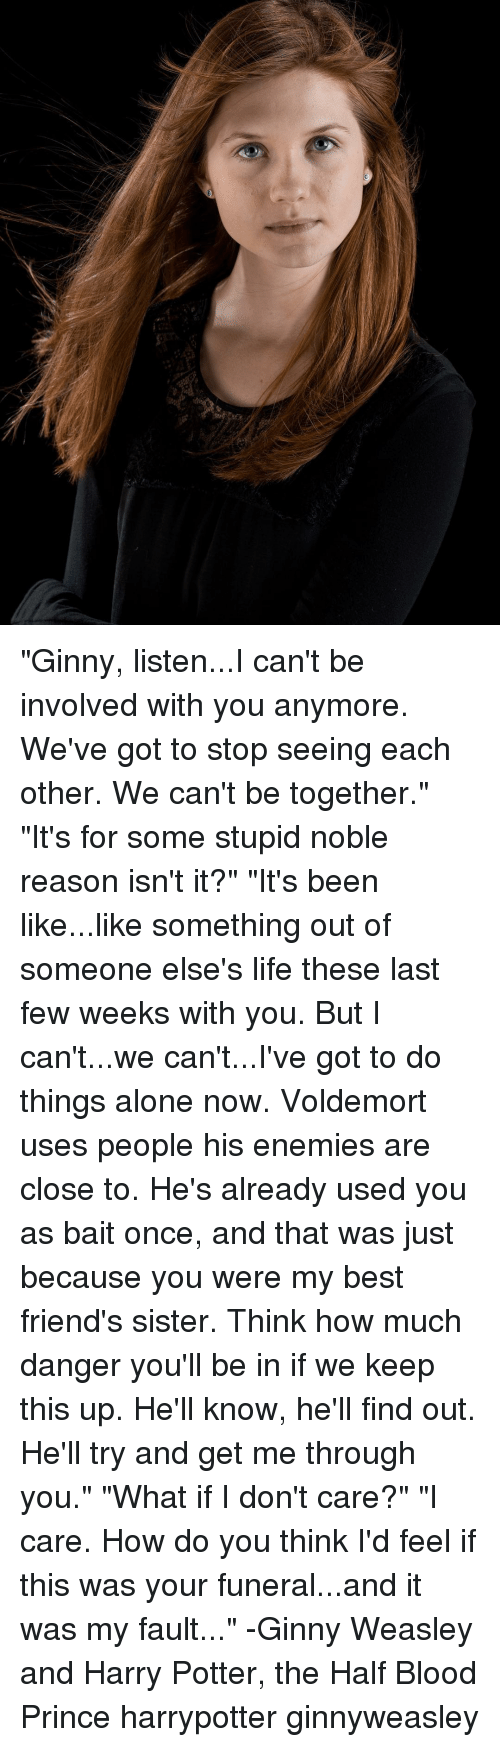 "Best Friend, Bloods, and Memes: ""Ginny, listen...I can't be involved with you anymore. We've got to stop seeing each other. We can't be together."" ""It's for some stupid noble reason isn't it?"" ""It's been like...like something out of someone else's life these last few weeks with you. But I can't...we can't...I've got to do things alone now. Voldemort uses people his enemies are close to. He's already used you as bait once, and that was just because you were my best friend's sister. Think how much danger you'll be in if we keep this up. He'll know, he'll find out. He'll try and get me through you."" ""What if I don't care?"" ""I care. How do you think I'd feel if this was your funeral...and it was my fault..."" -Ginny Weasley and Harry Potter, the Half Blood Prince harrypotter ginnyweasley"